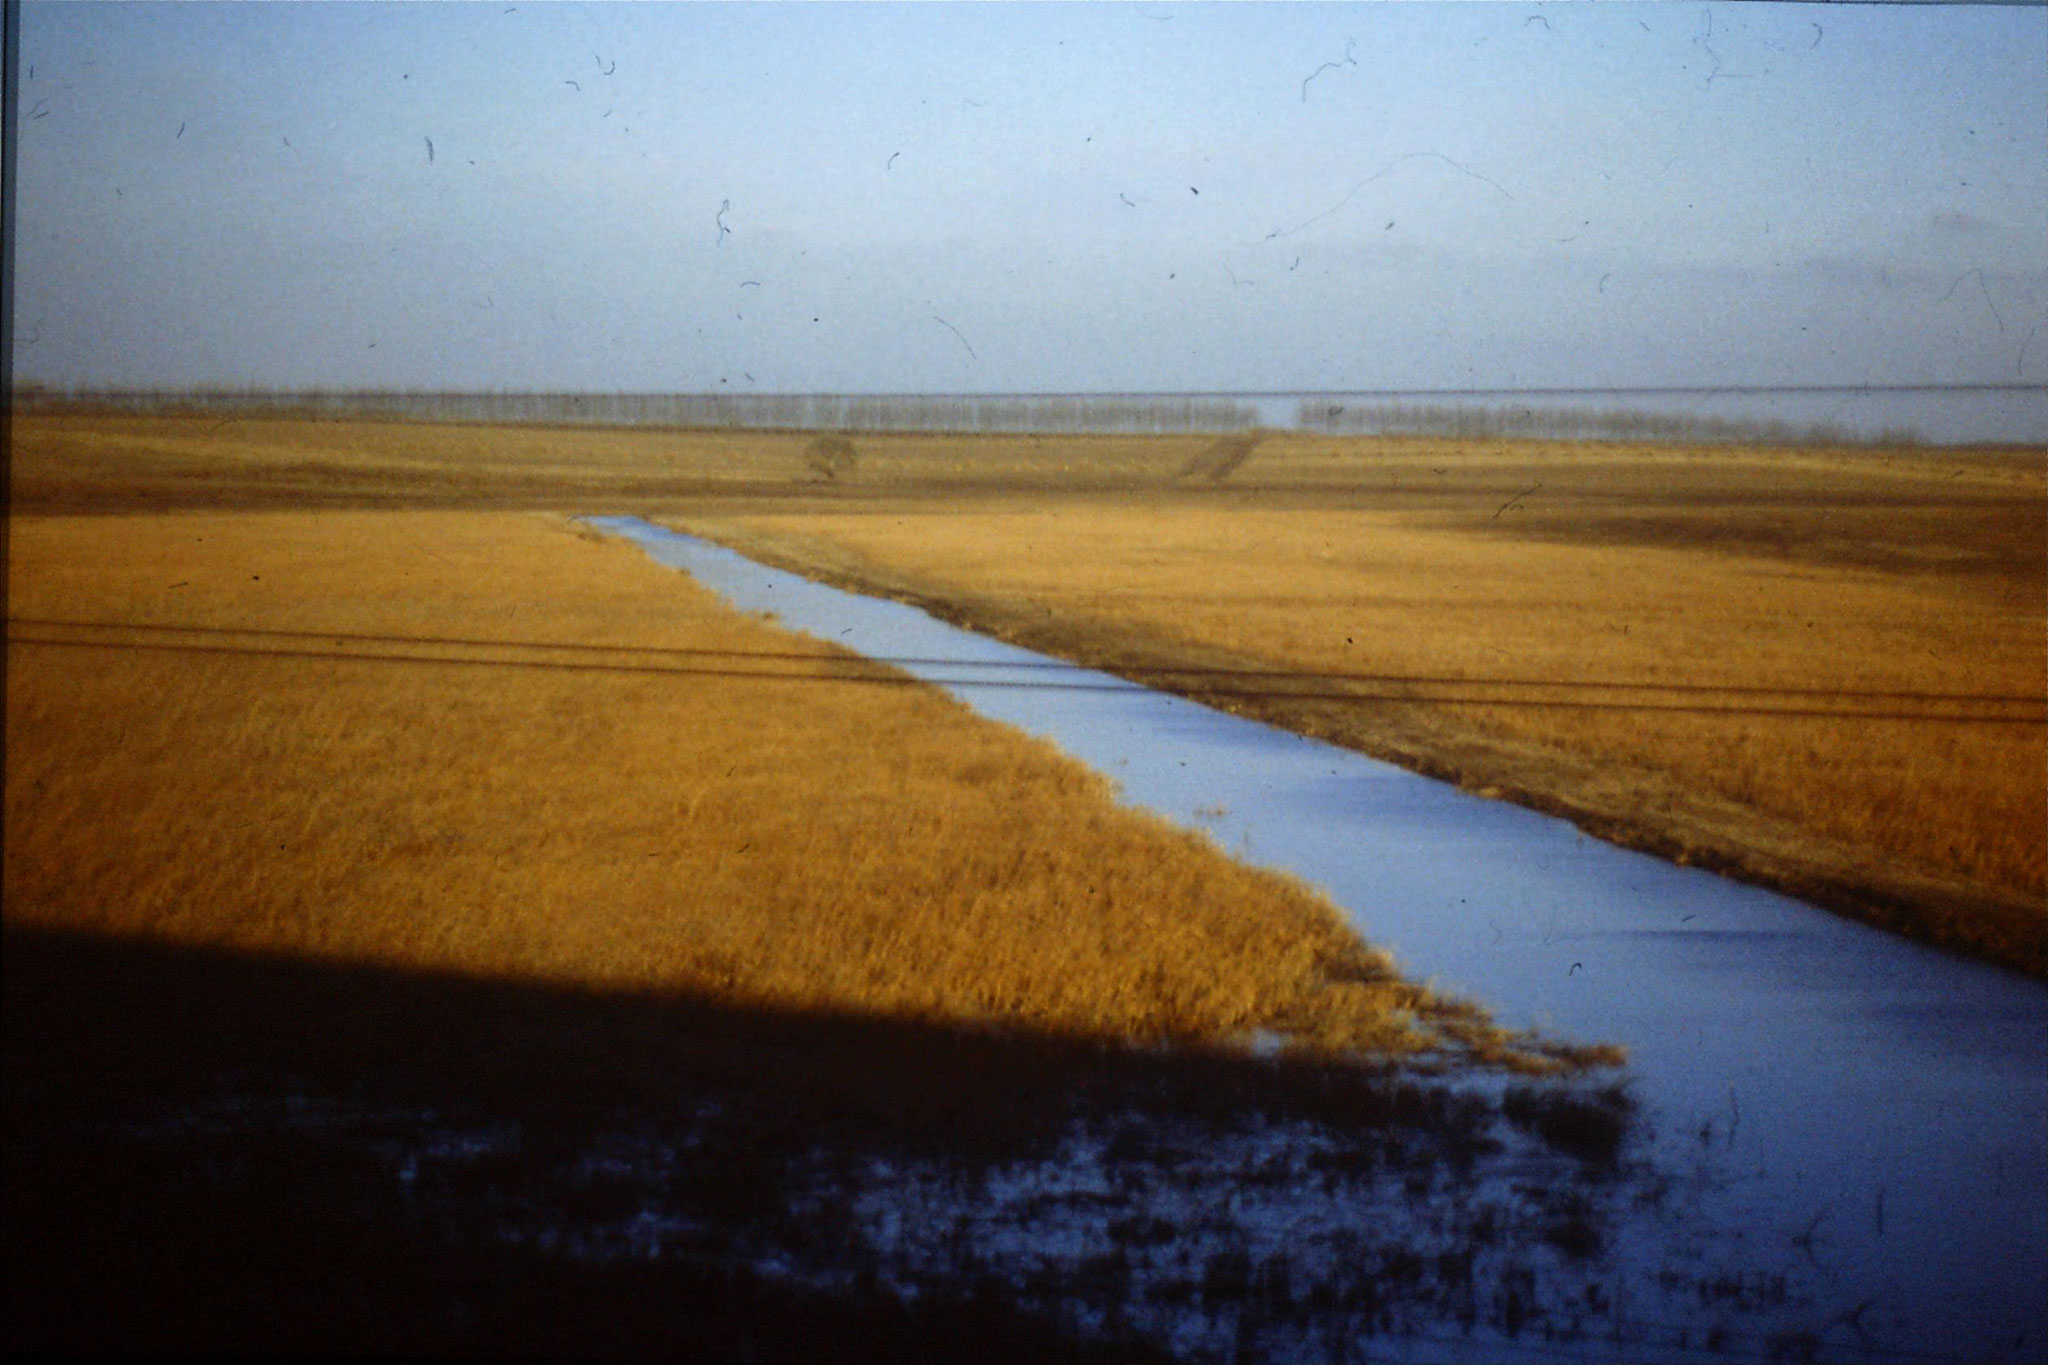 27/10/1988: 24: village and countryside after Harbin